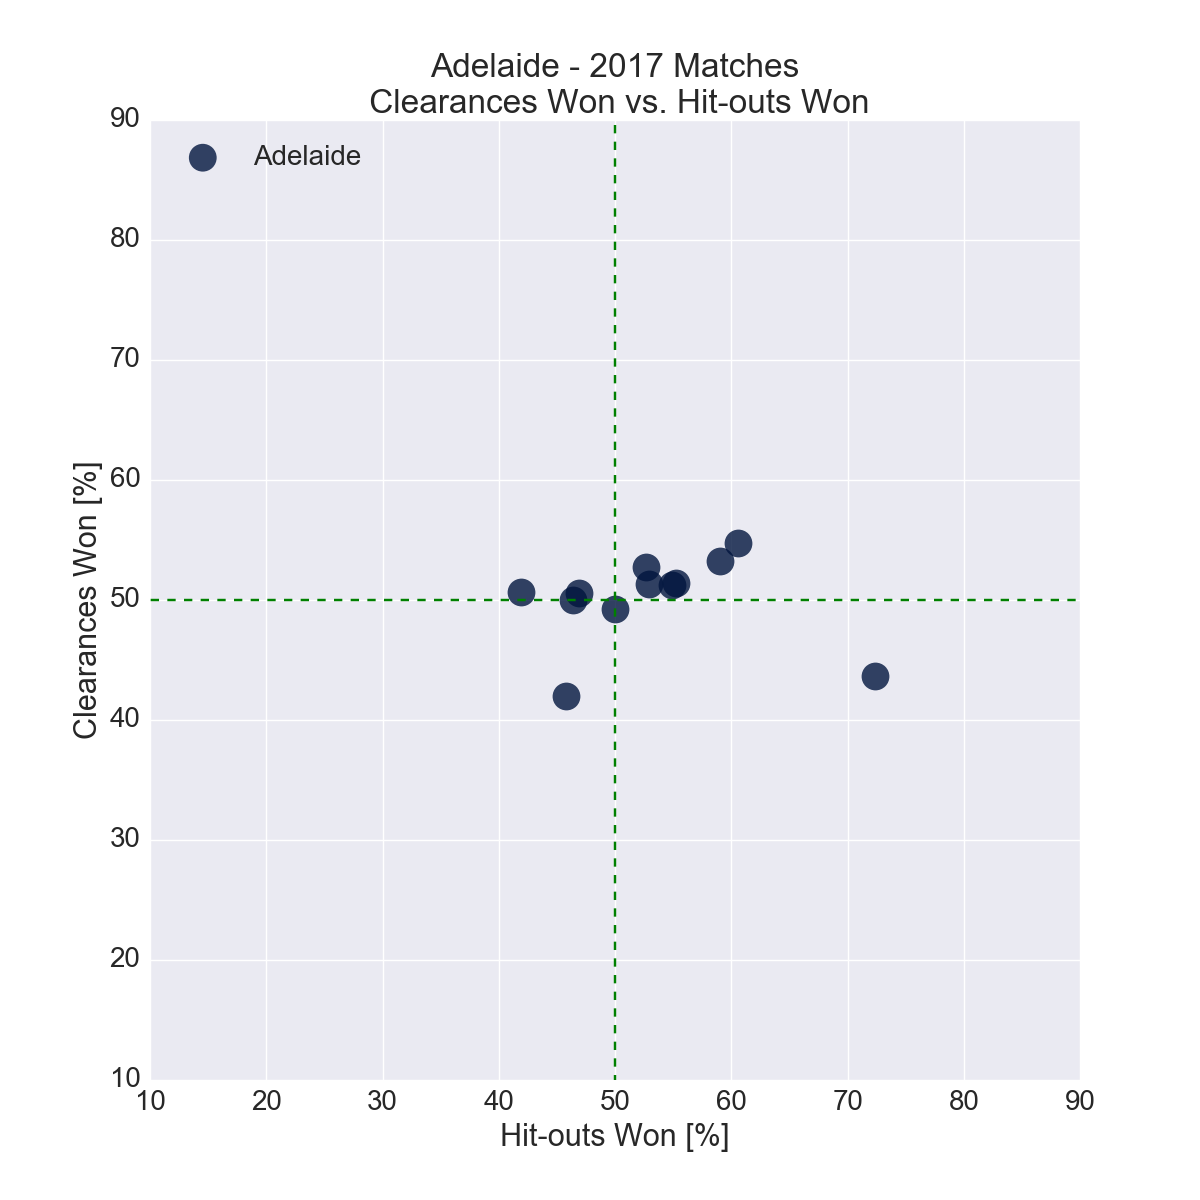 Figure-4: Adelaide in 2017 – Clearances Won vs. Hit-outs Won